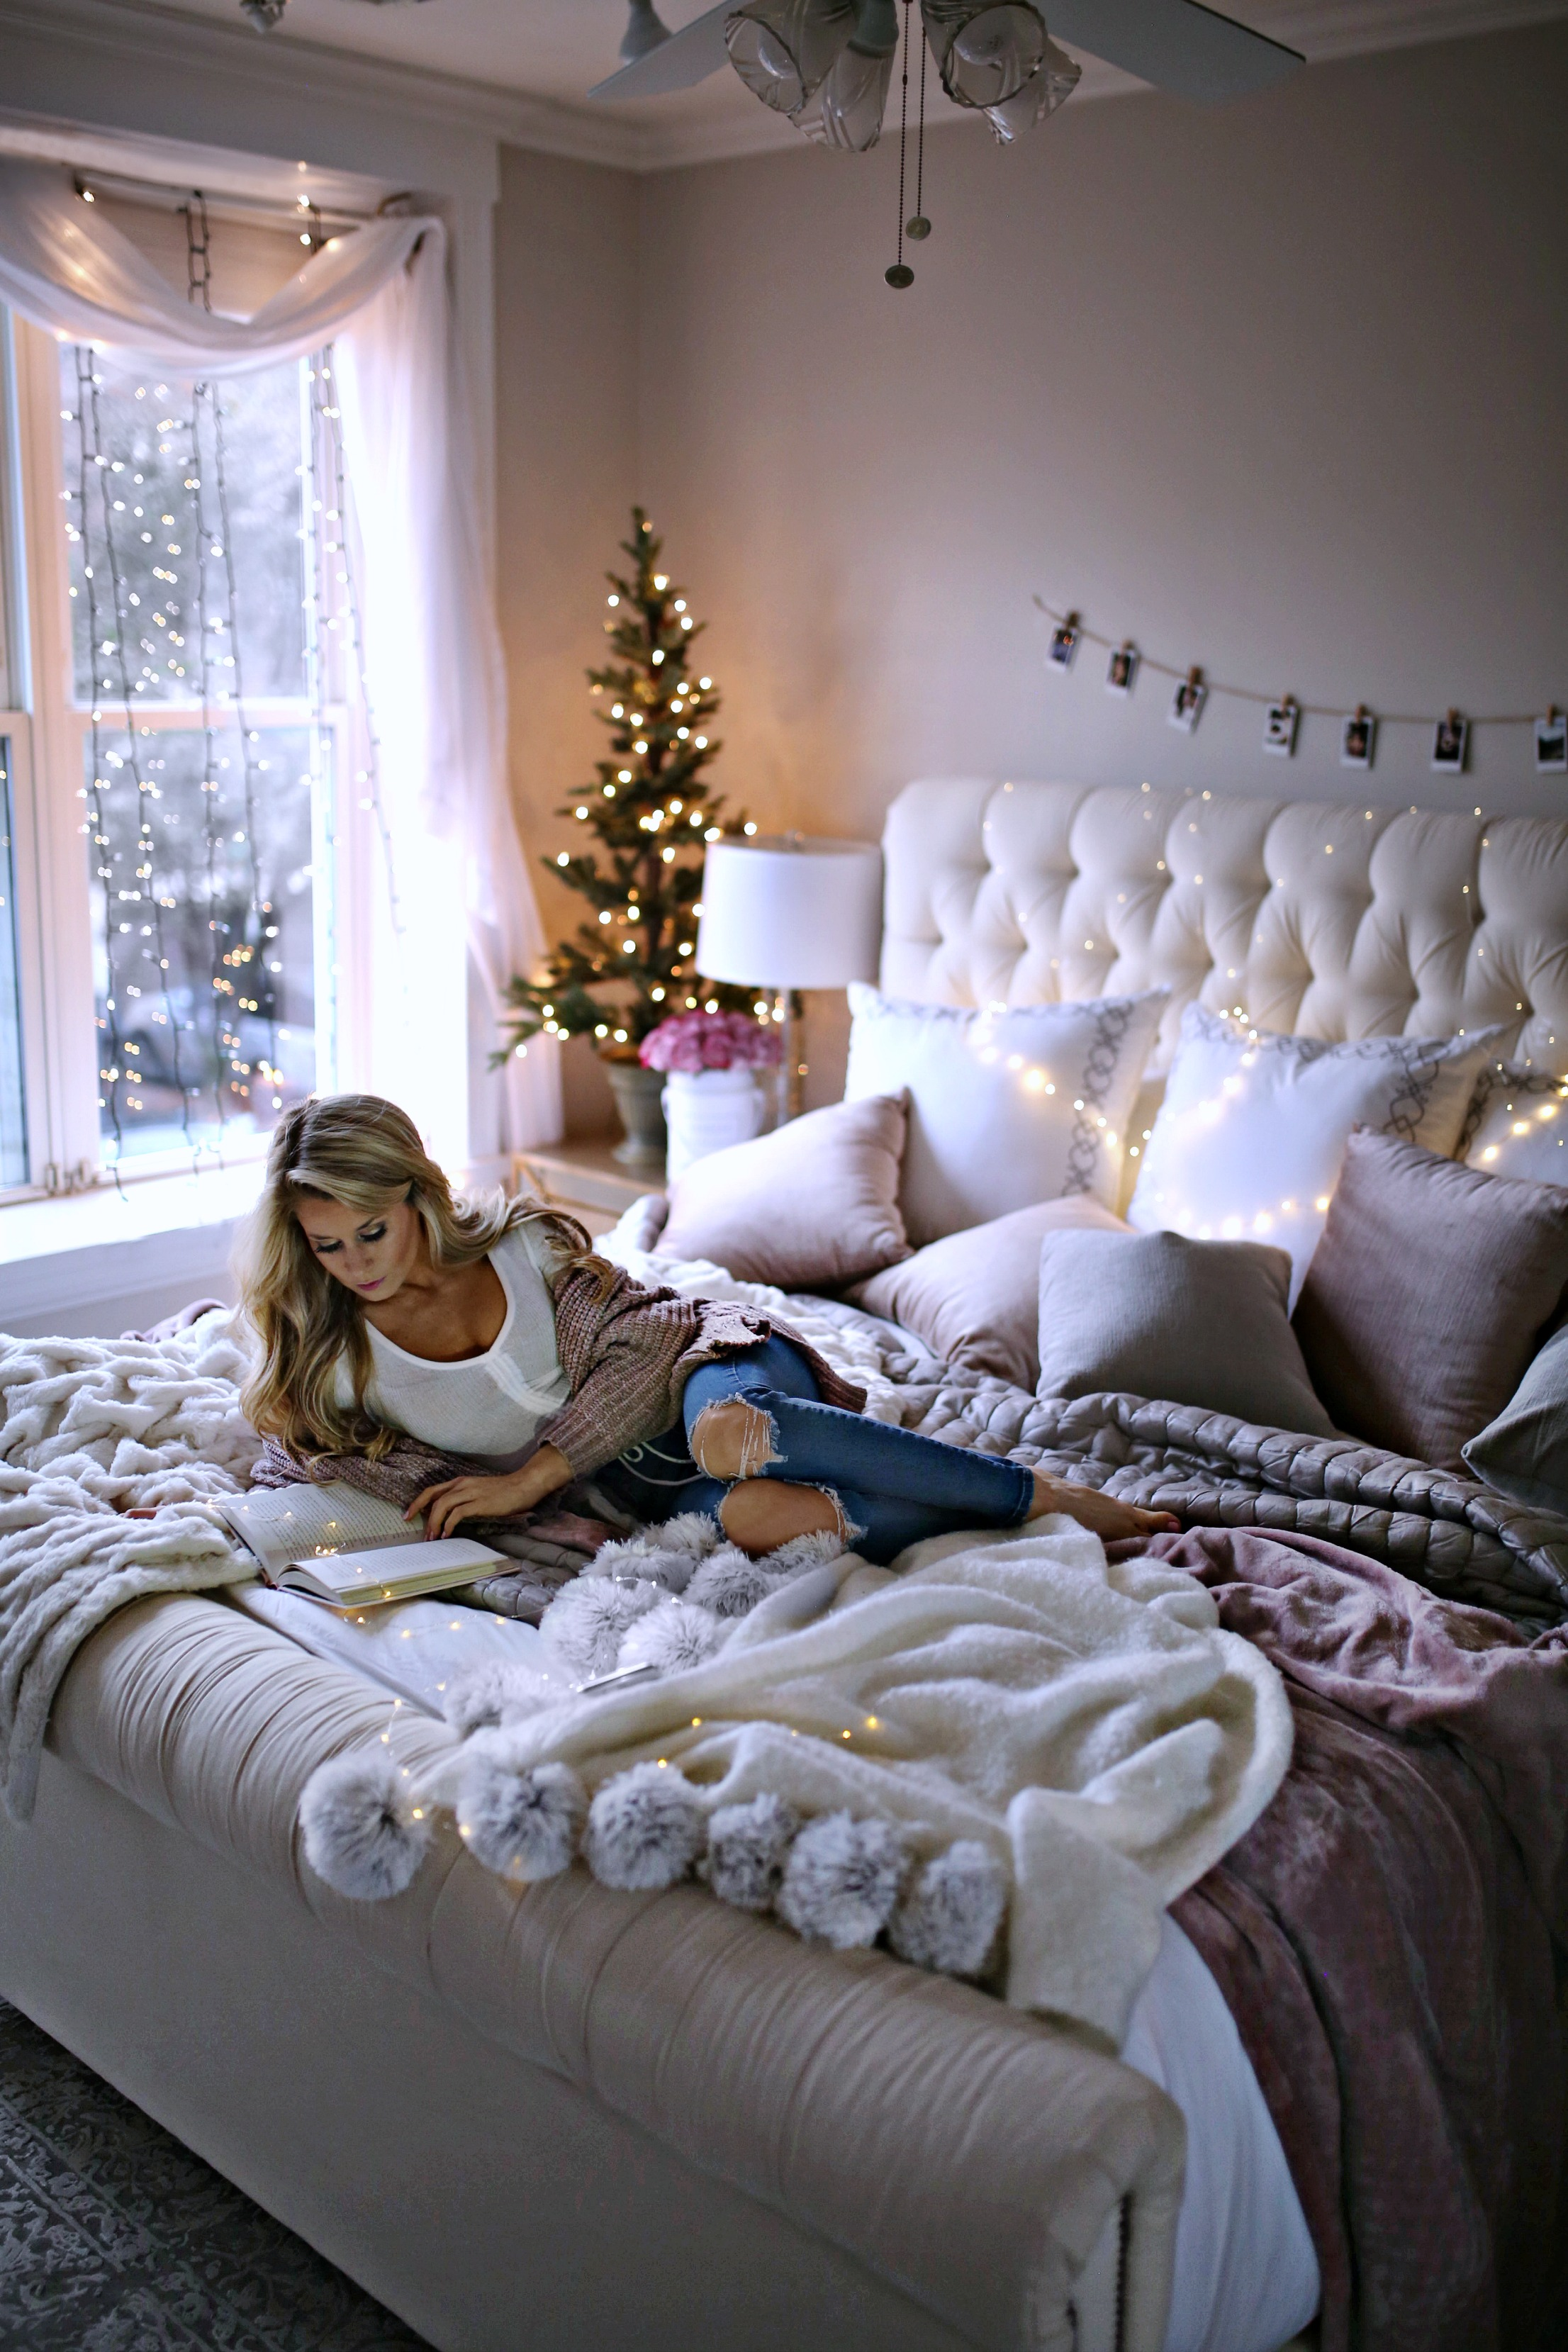 7 Holiday Decor Ideas for Your Bedroom  Welcome to Olivia Rink